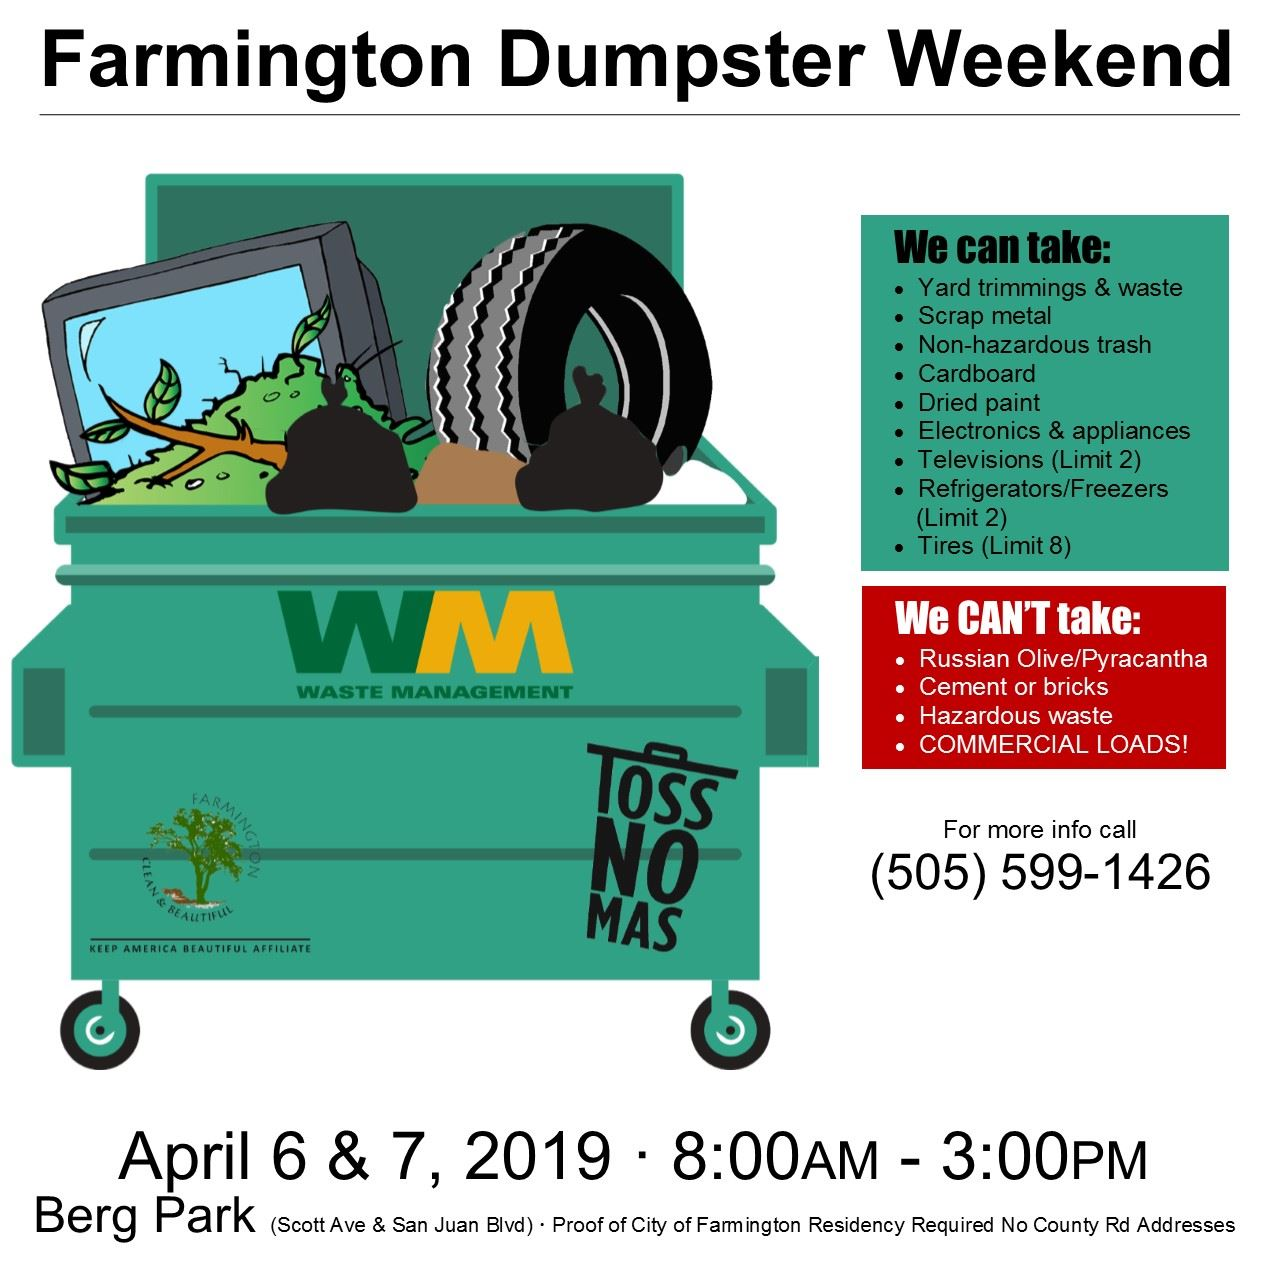 fall-dumpster-weekend-2019-fb